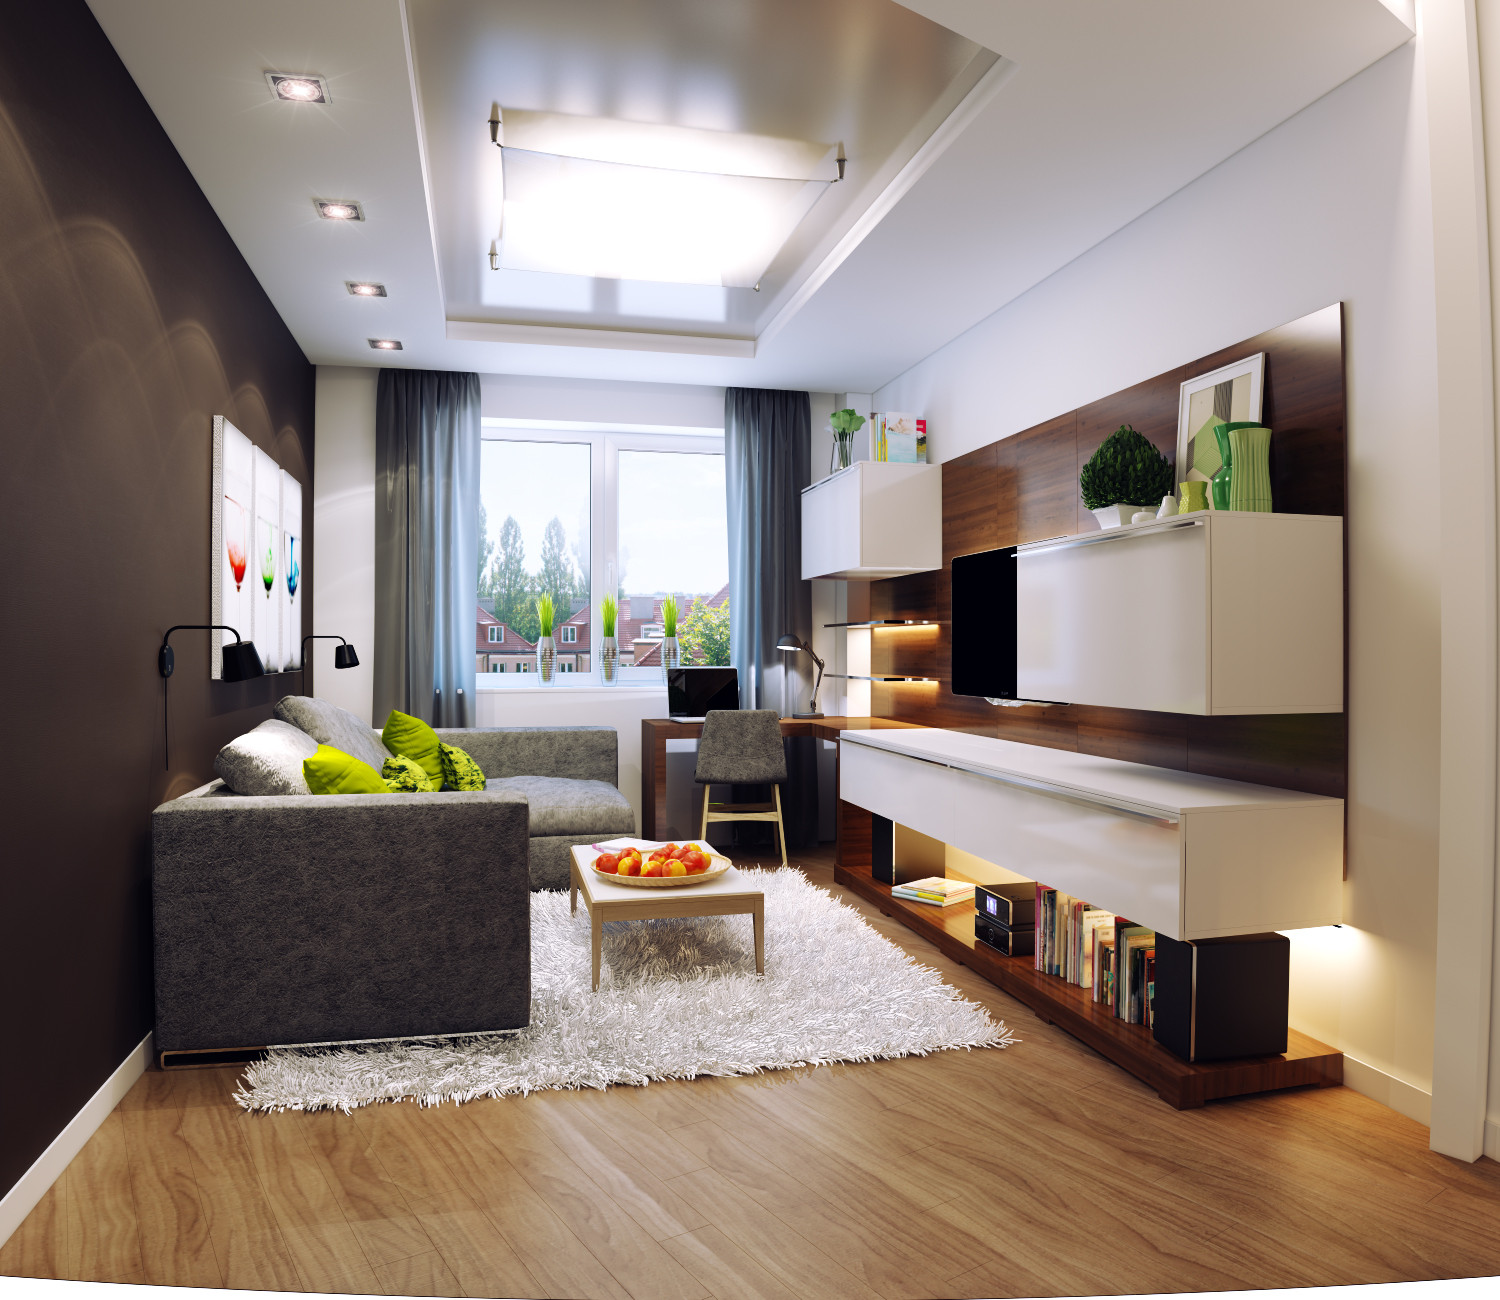 Best ideas about Small Living Room . Save or Pin 50 Best Small Living Room Design Ideas for 2018 Now.